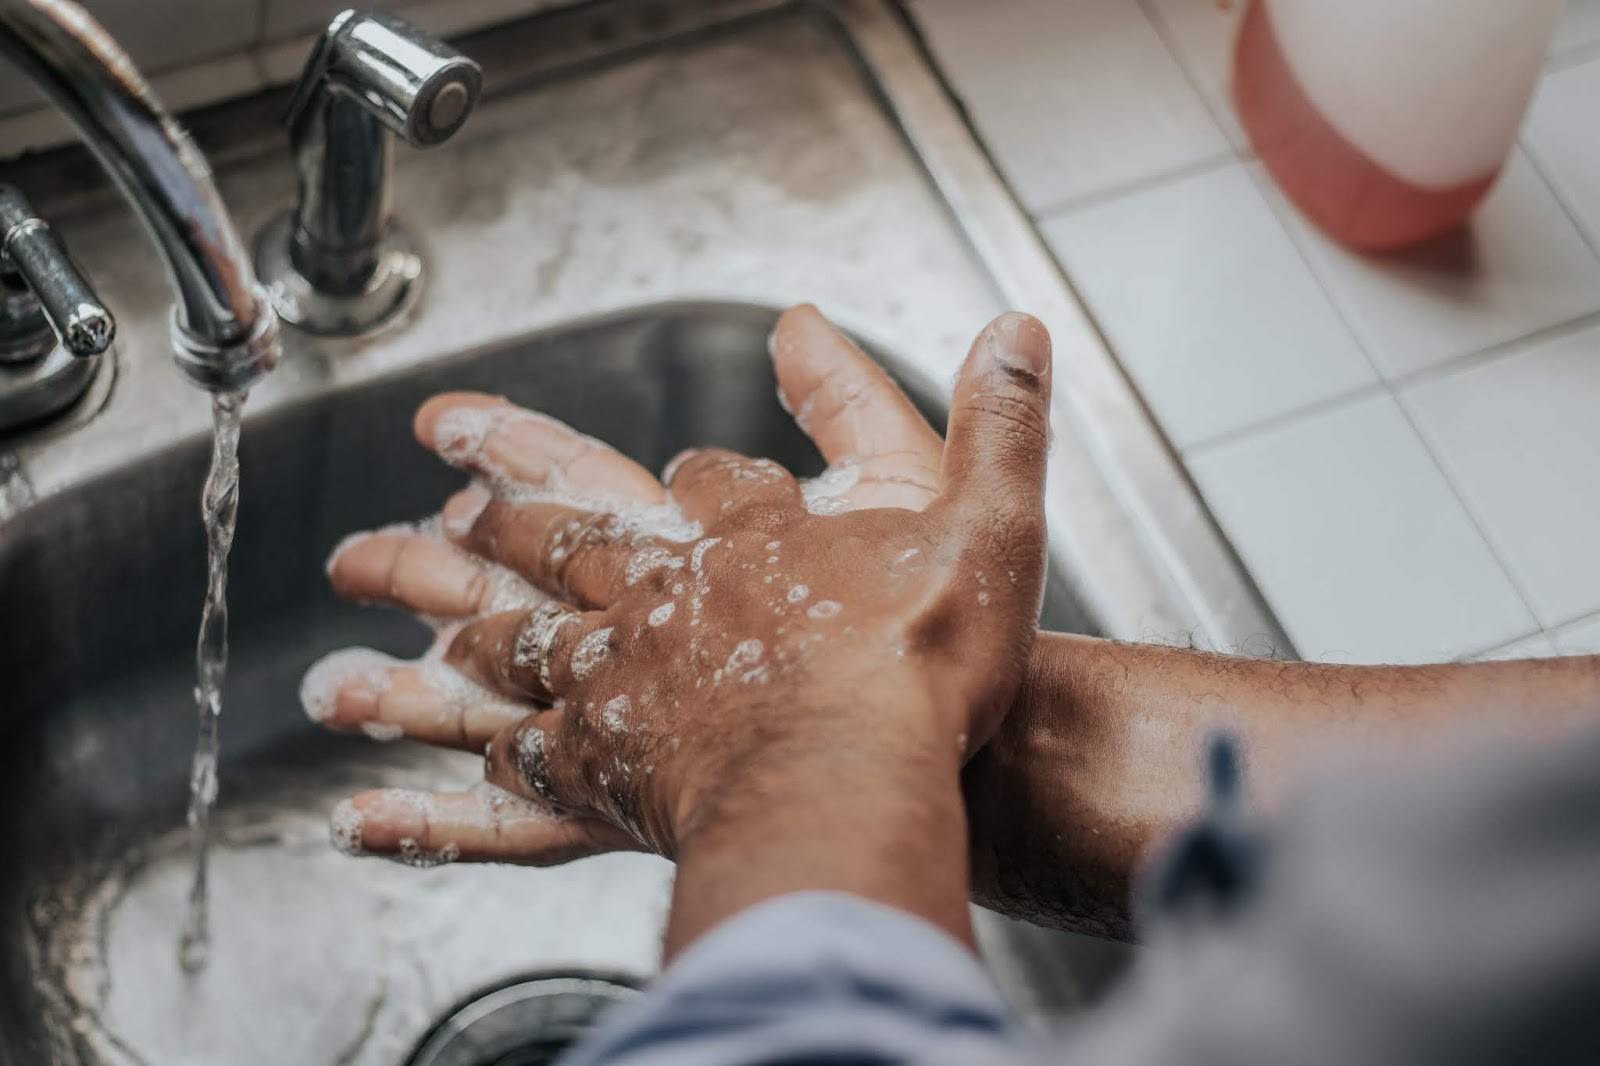 How To Wash Your Hands -Healthy Body with Synergy Chemicals